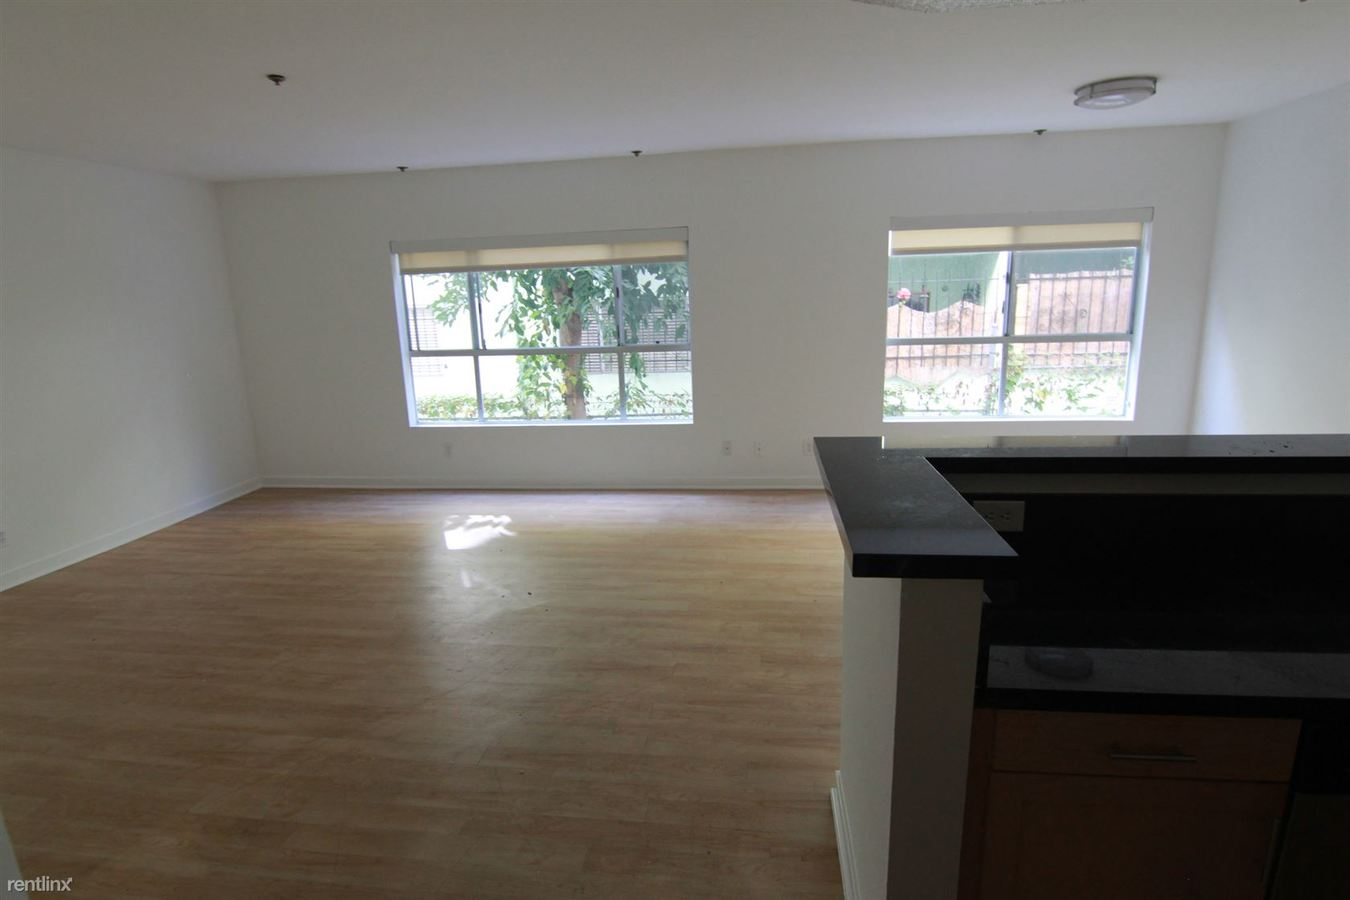 2 Bedrooms 2 Bathrooms Apartment for rent at 939 Palm Ave in West Hollywood, CA